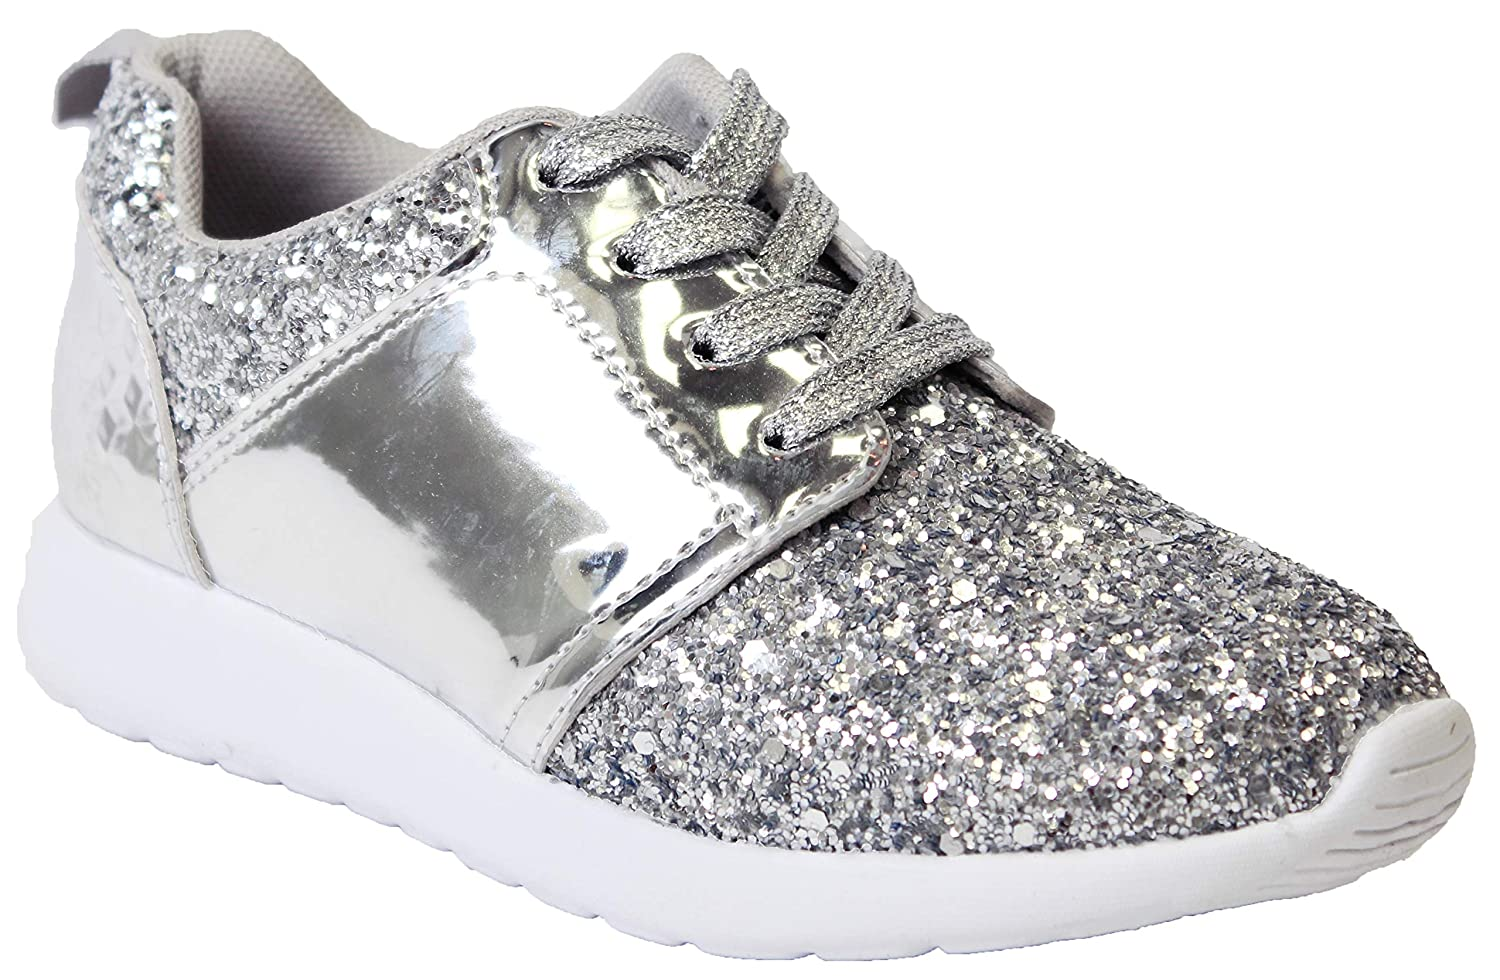 Twinkle Kids Girls Silver Fashion Metallic Sequins Glitter Lace up Light Weight Stylish Sneaker Shoes-2